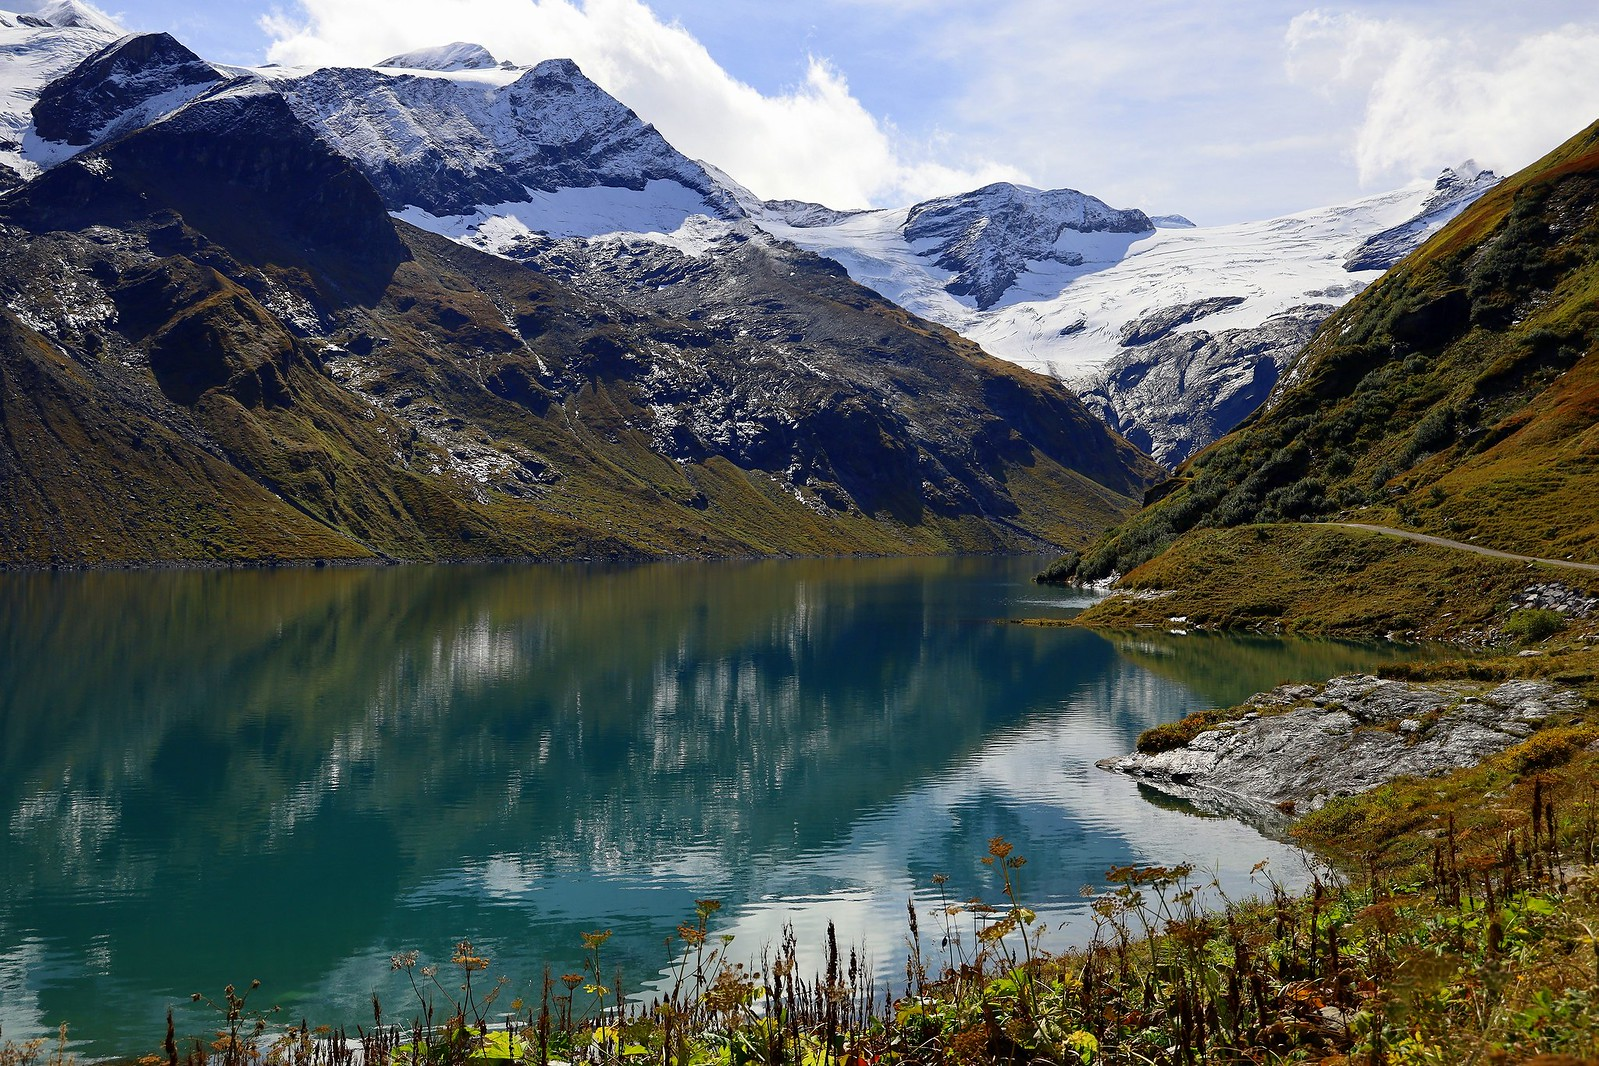 Magical world of mountains and water